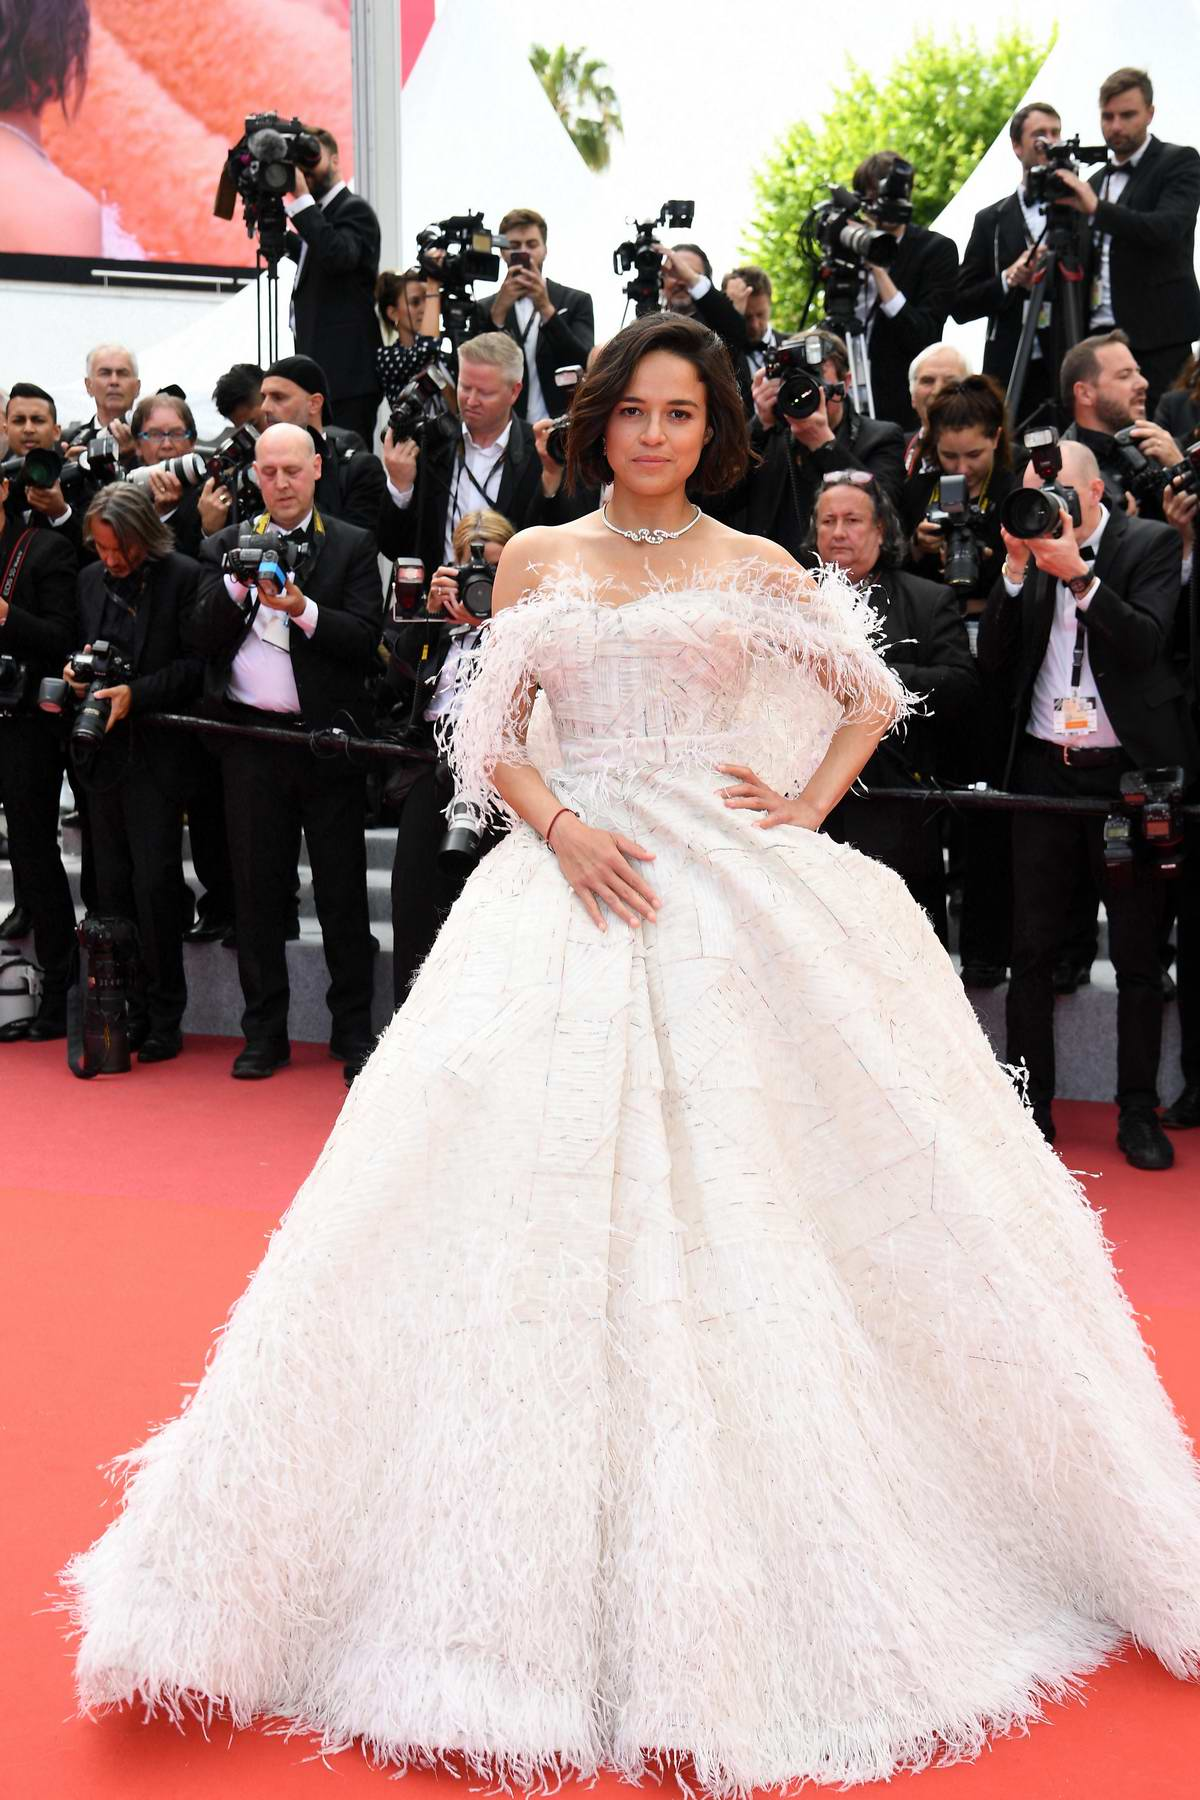 Michelle Rodriguez attends the screening of 'Once Upon A Time In Hollywood' during the 72nd annual Cannes Film Festival in Cannes, France